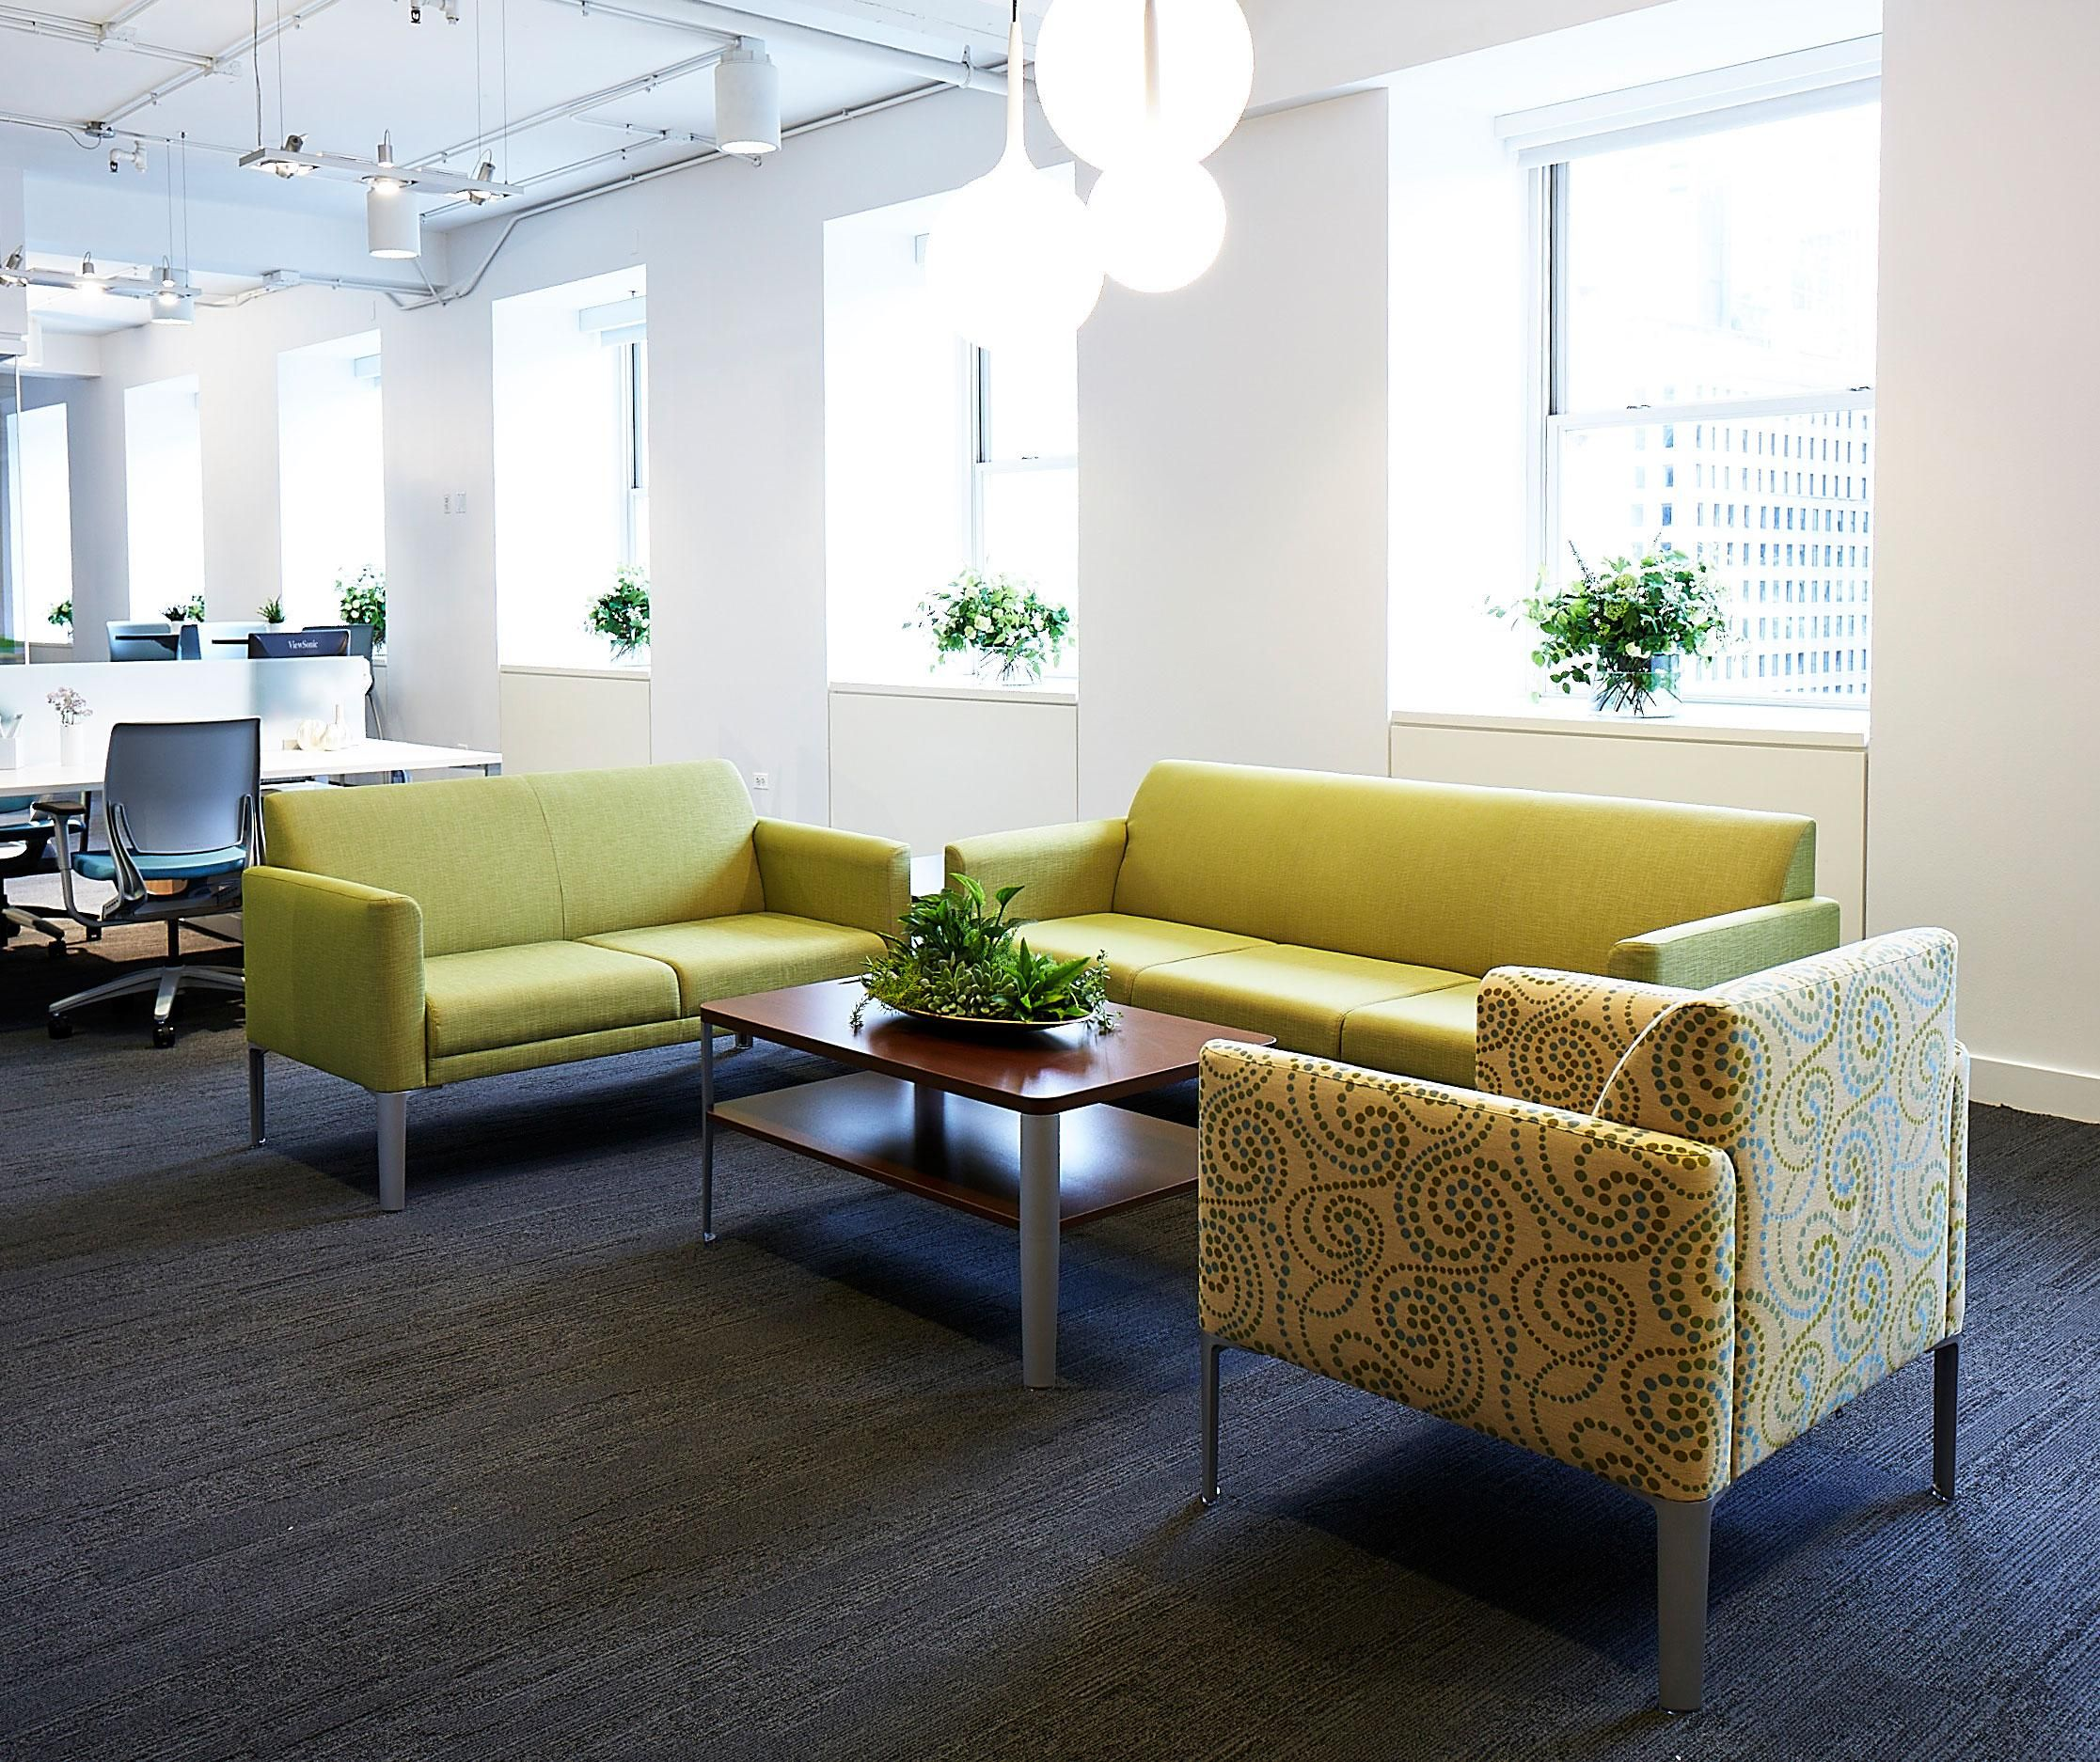 National fice Furniture Collaborative Lounge Seating and